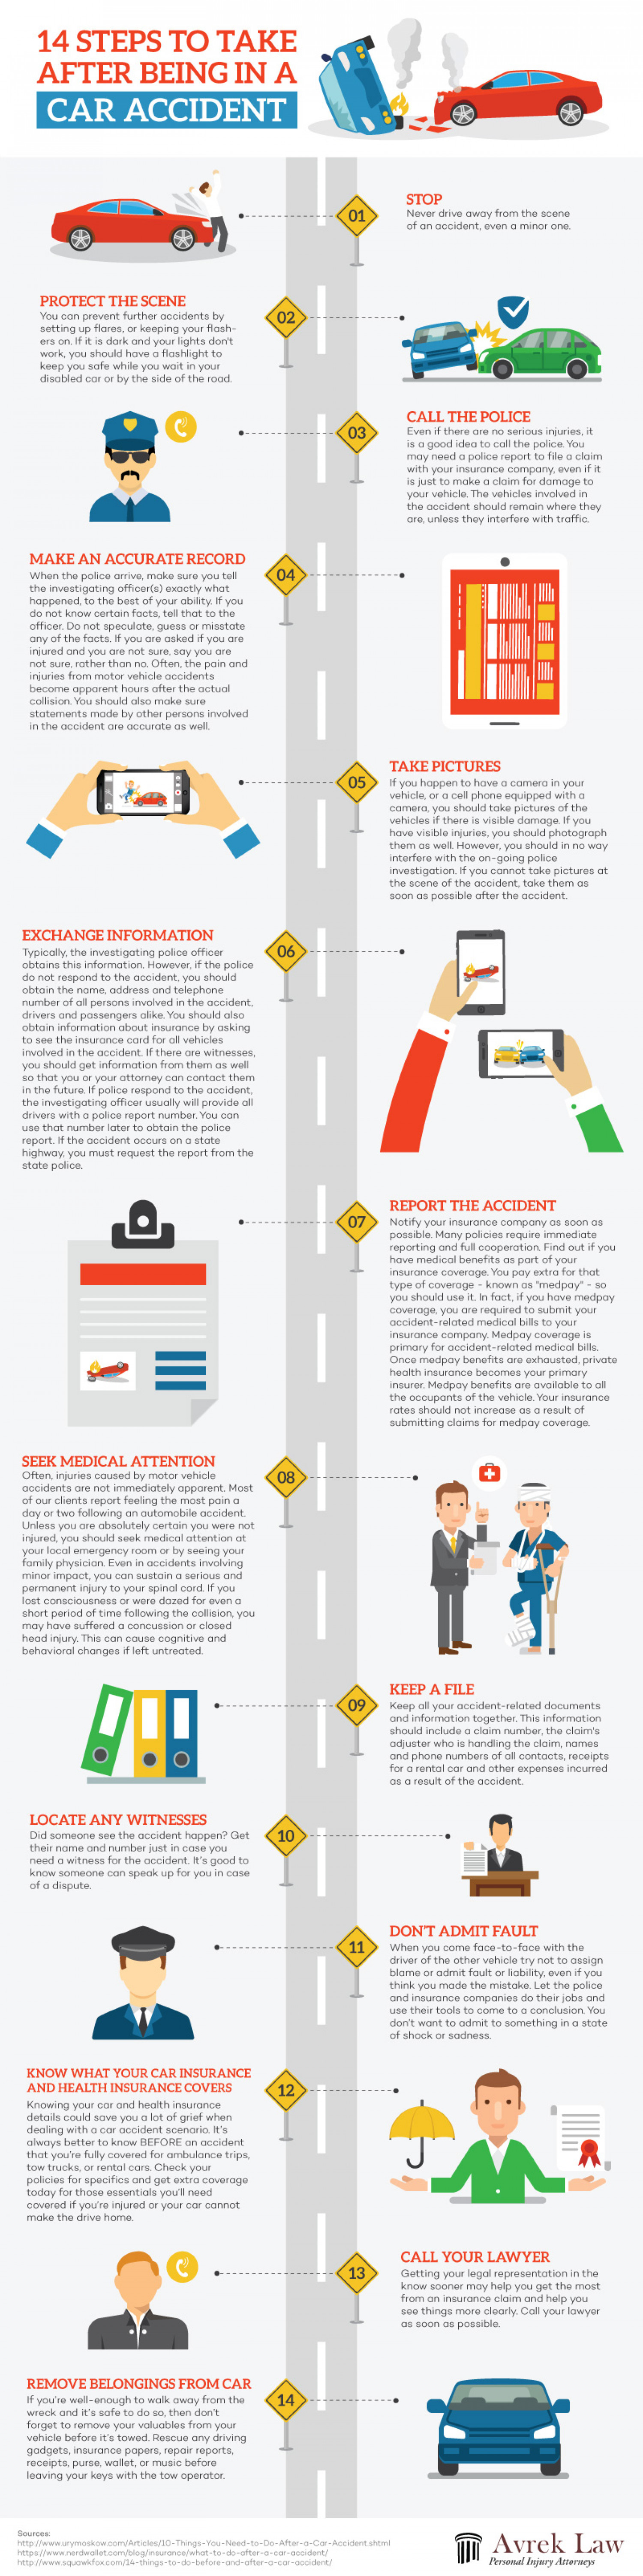 14 Steps to Take After a Car Accident Infographic